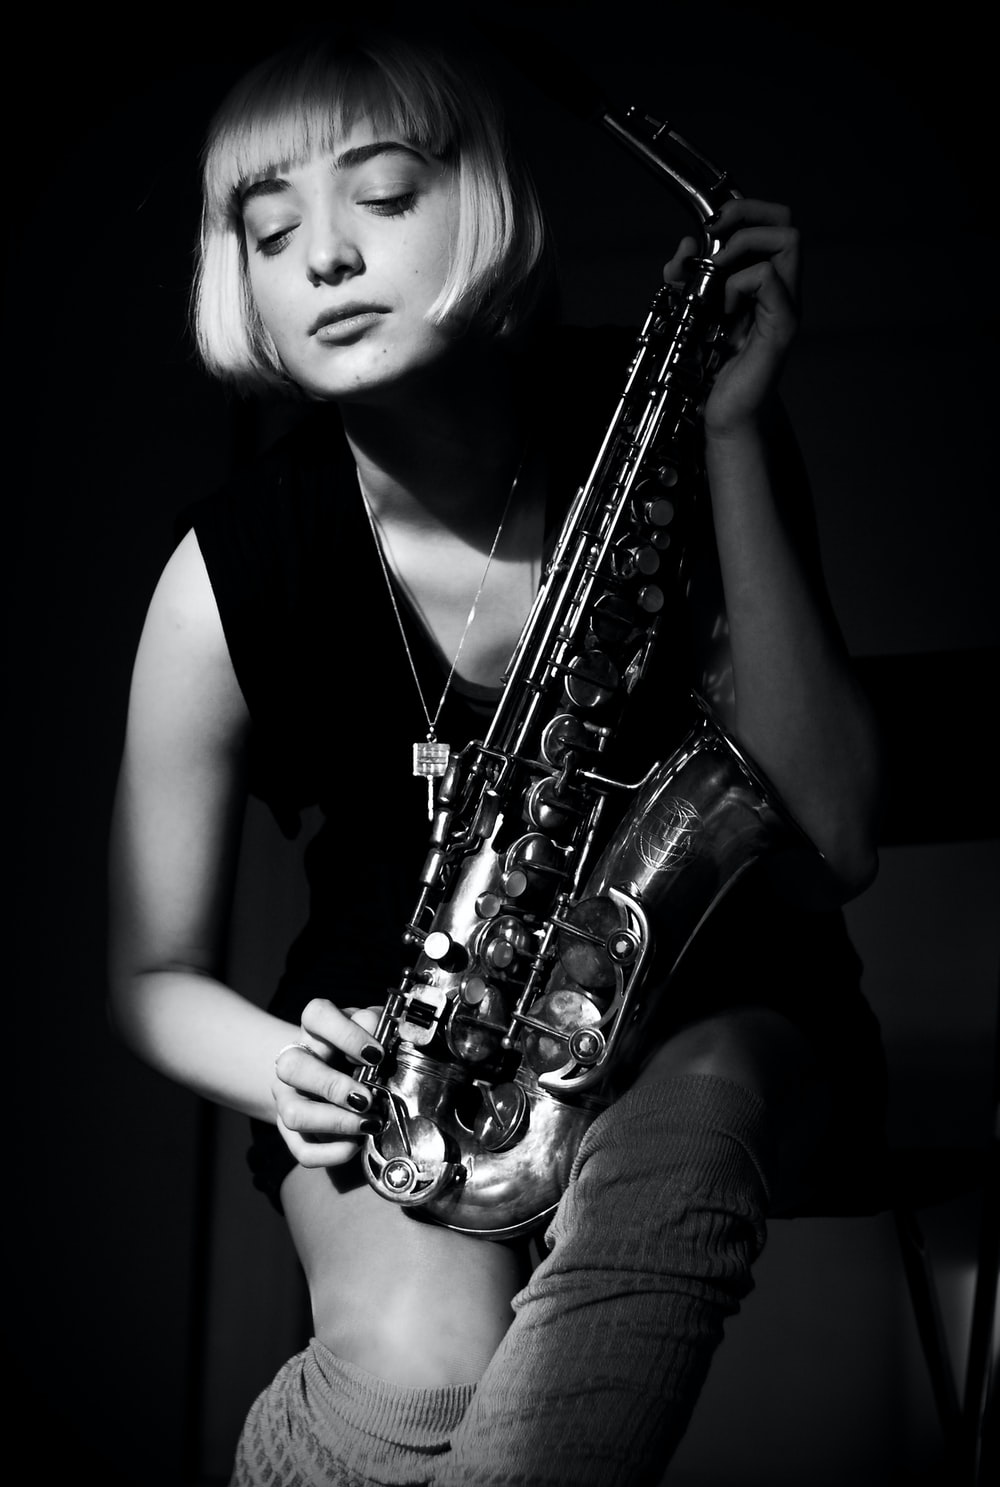 grayscale photography of woman holding saxophone